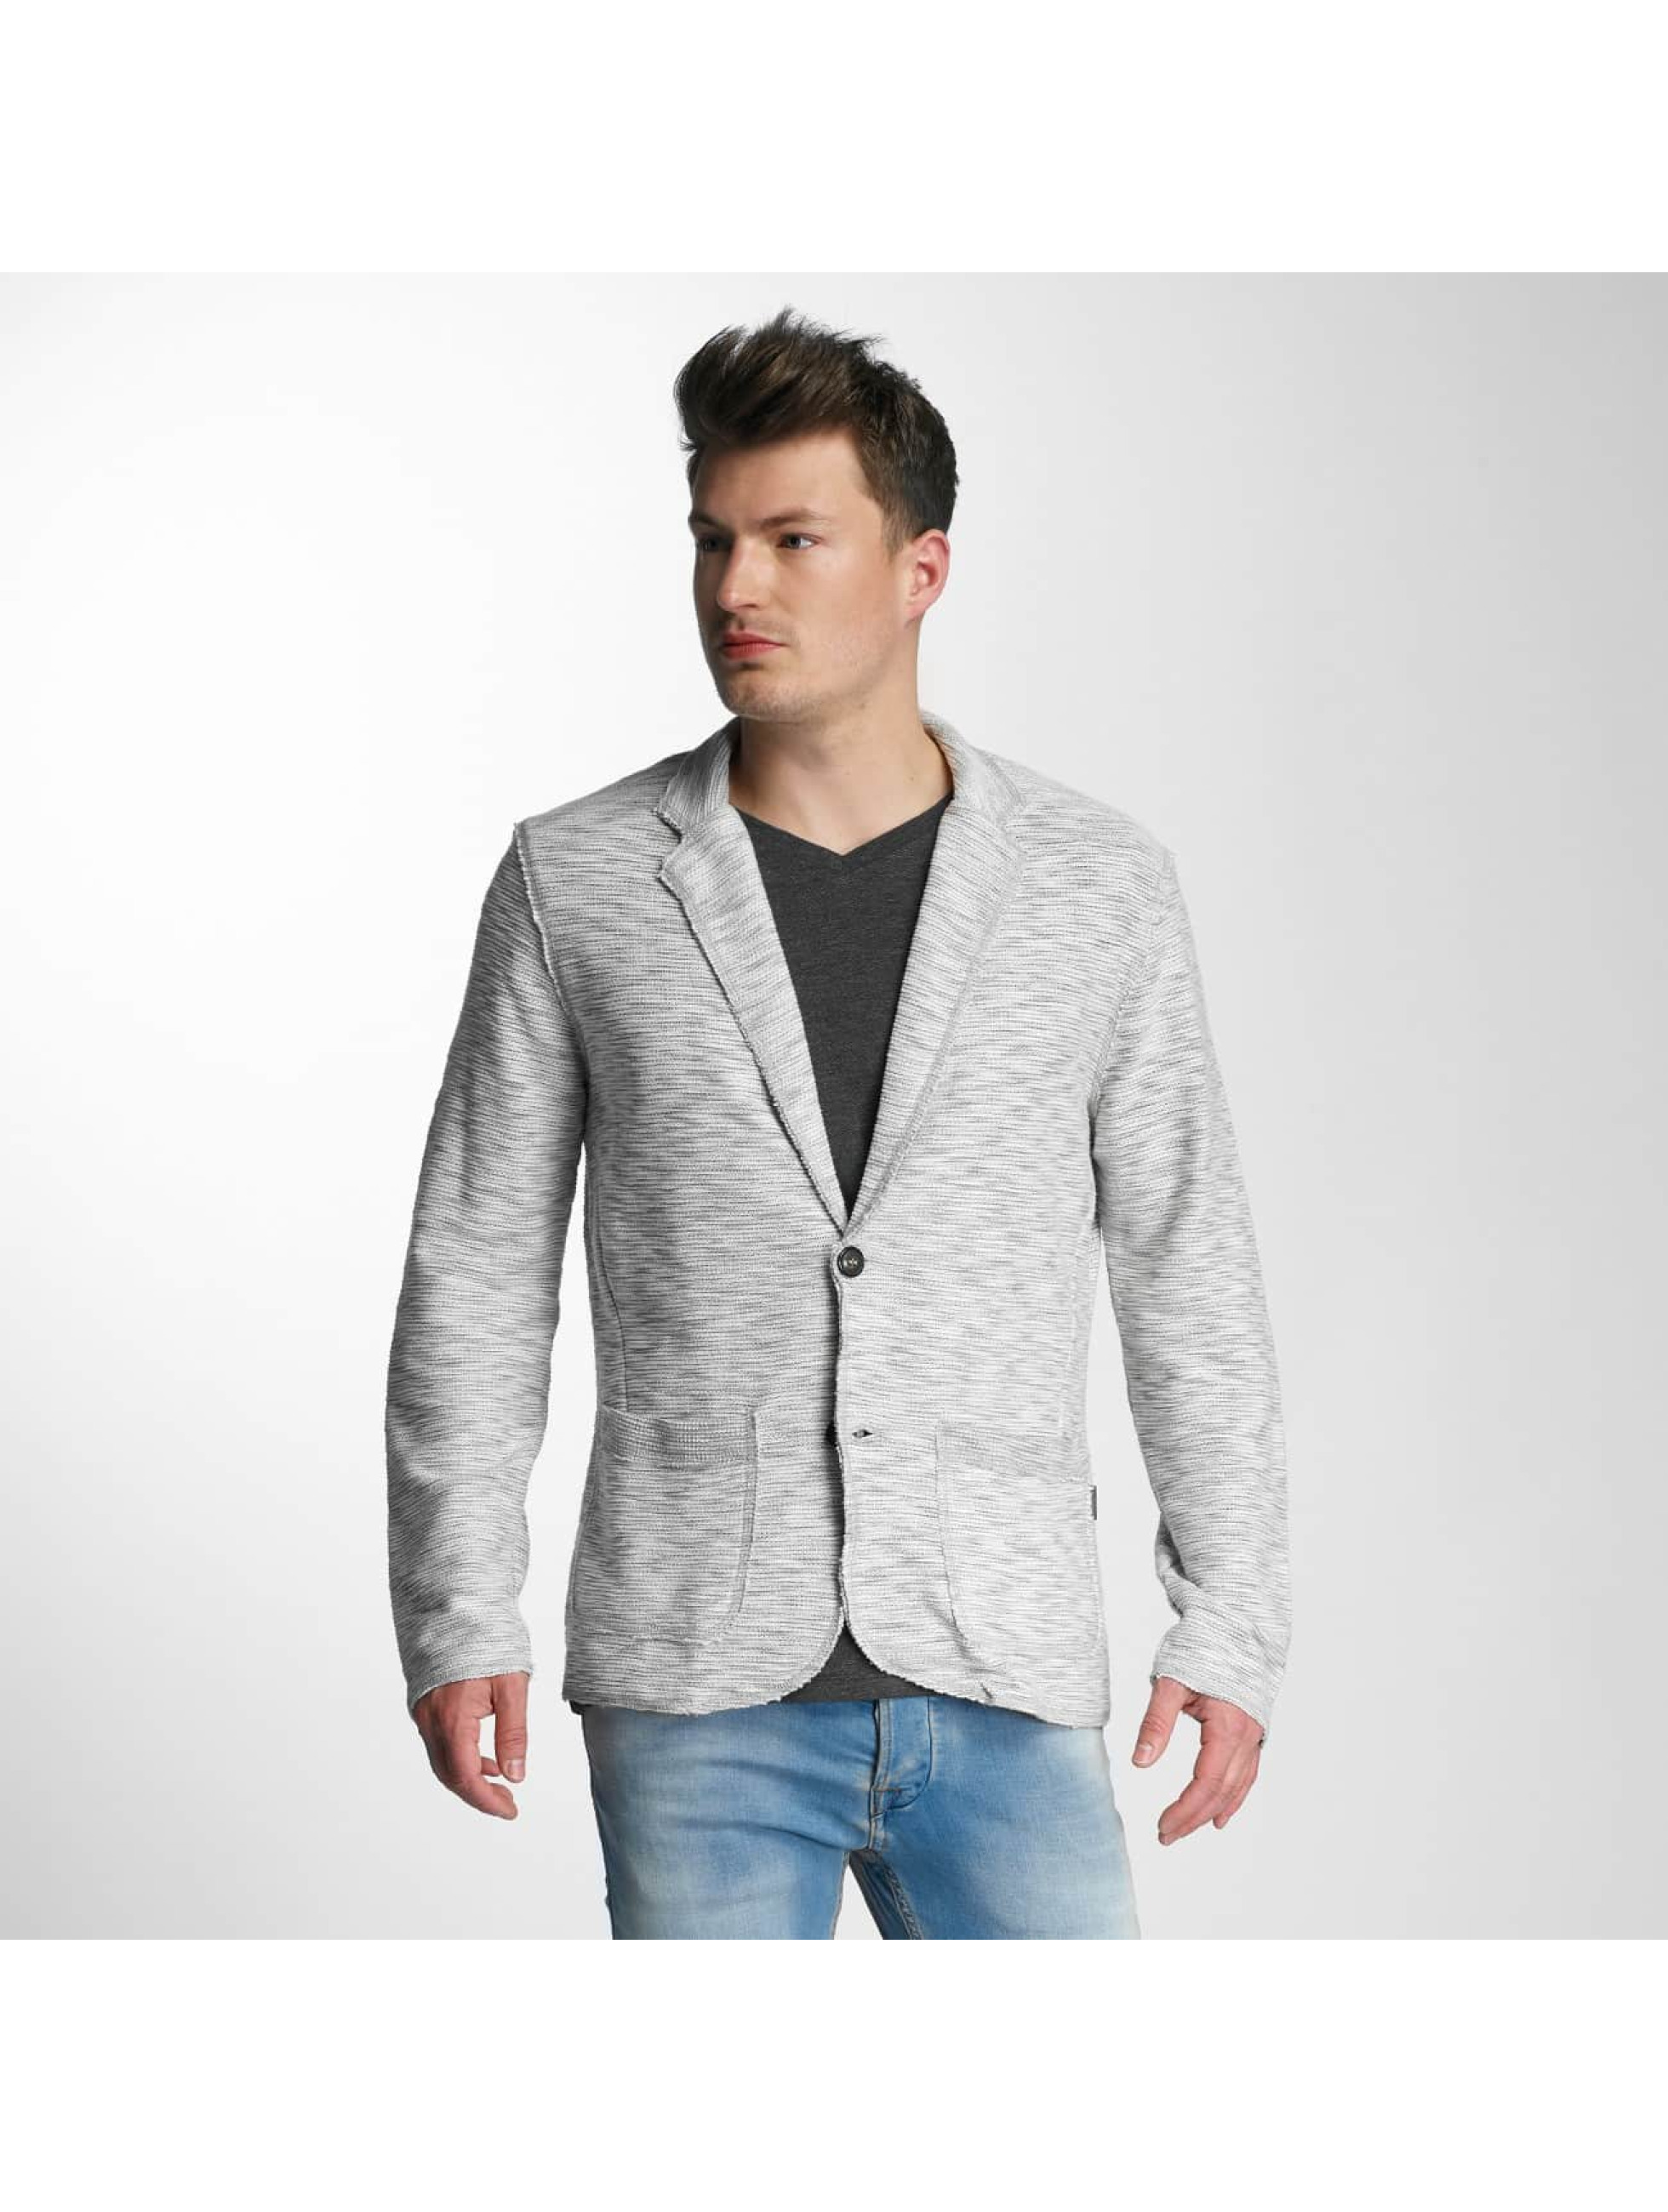 jack jones jorossie gris homme blazer femme jack jones acheter pas cher manteau veste 314455. Black Bedroom Furniture Sets. Home Design Ideas